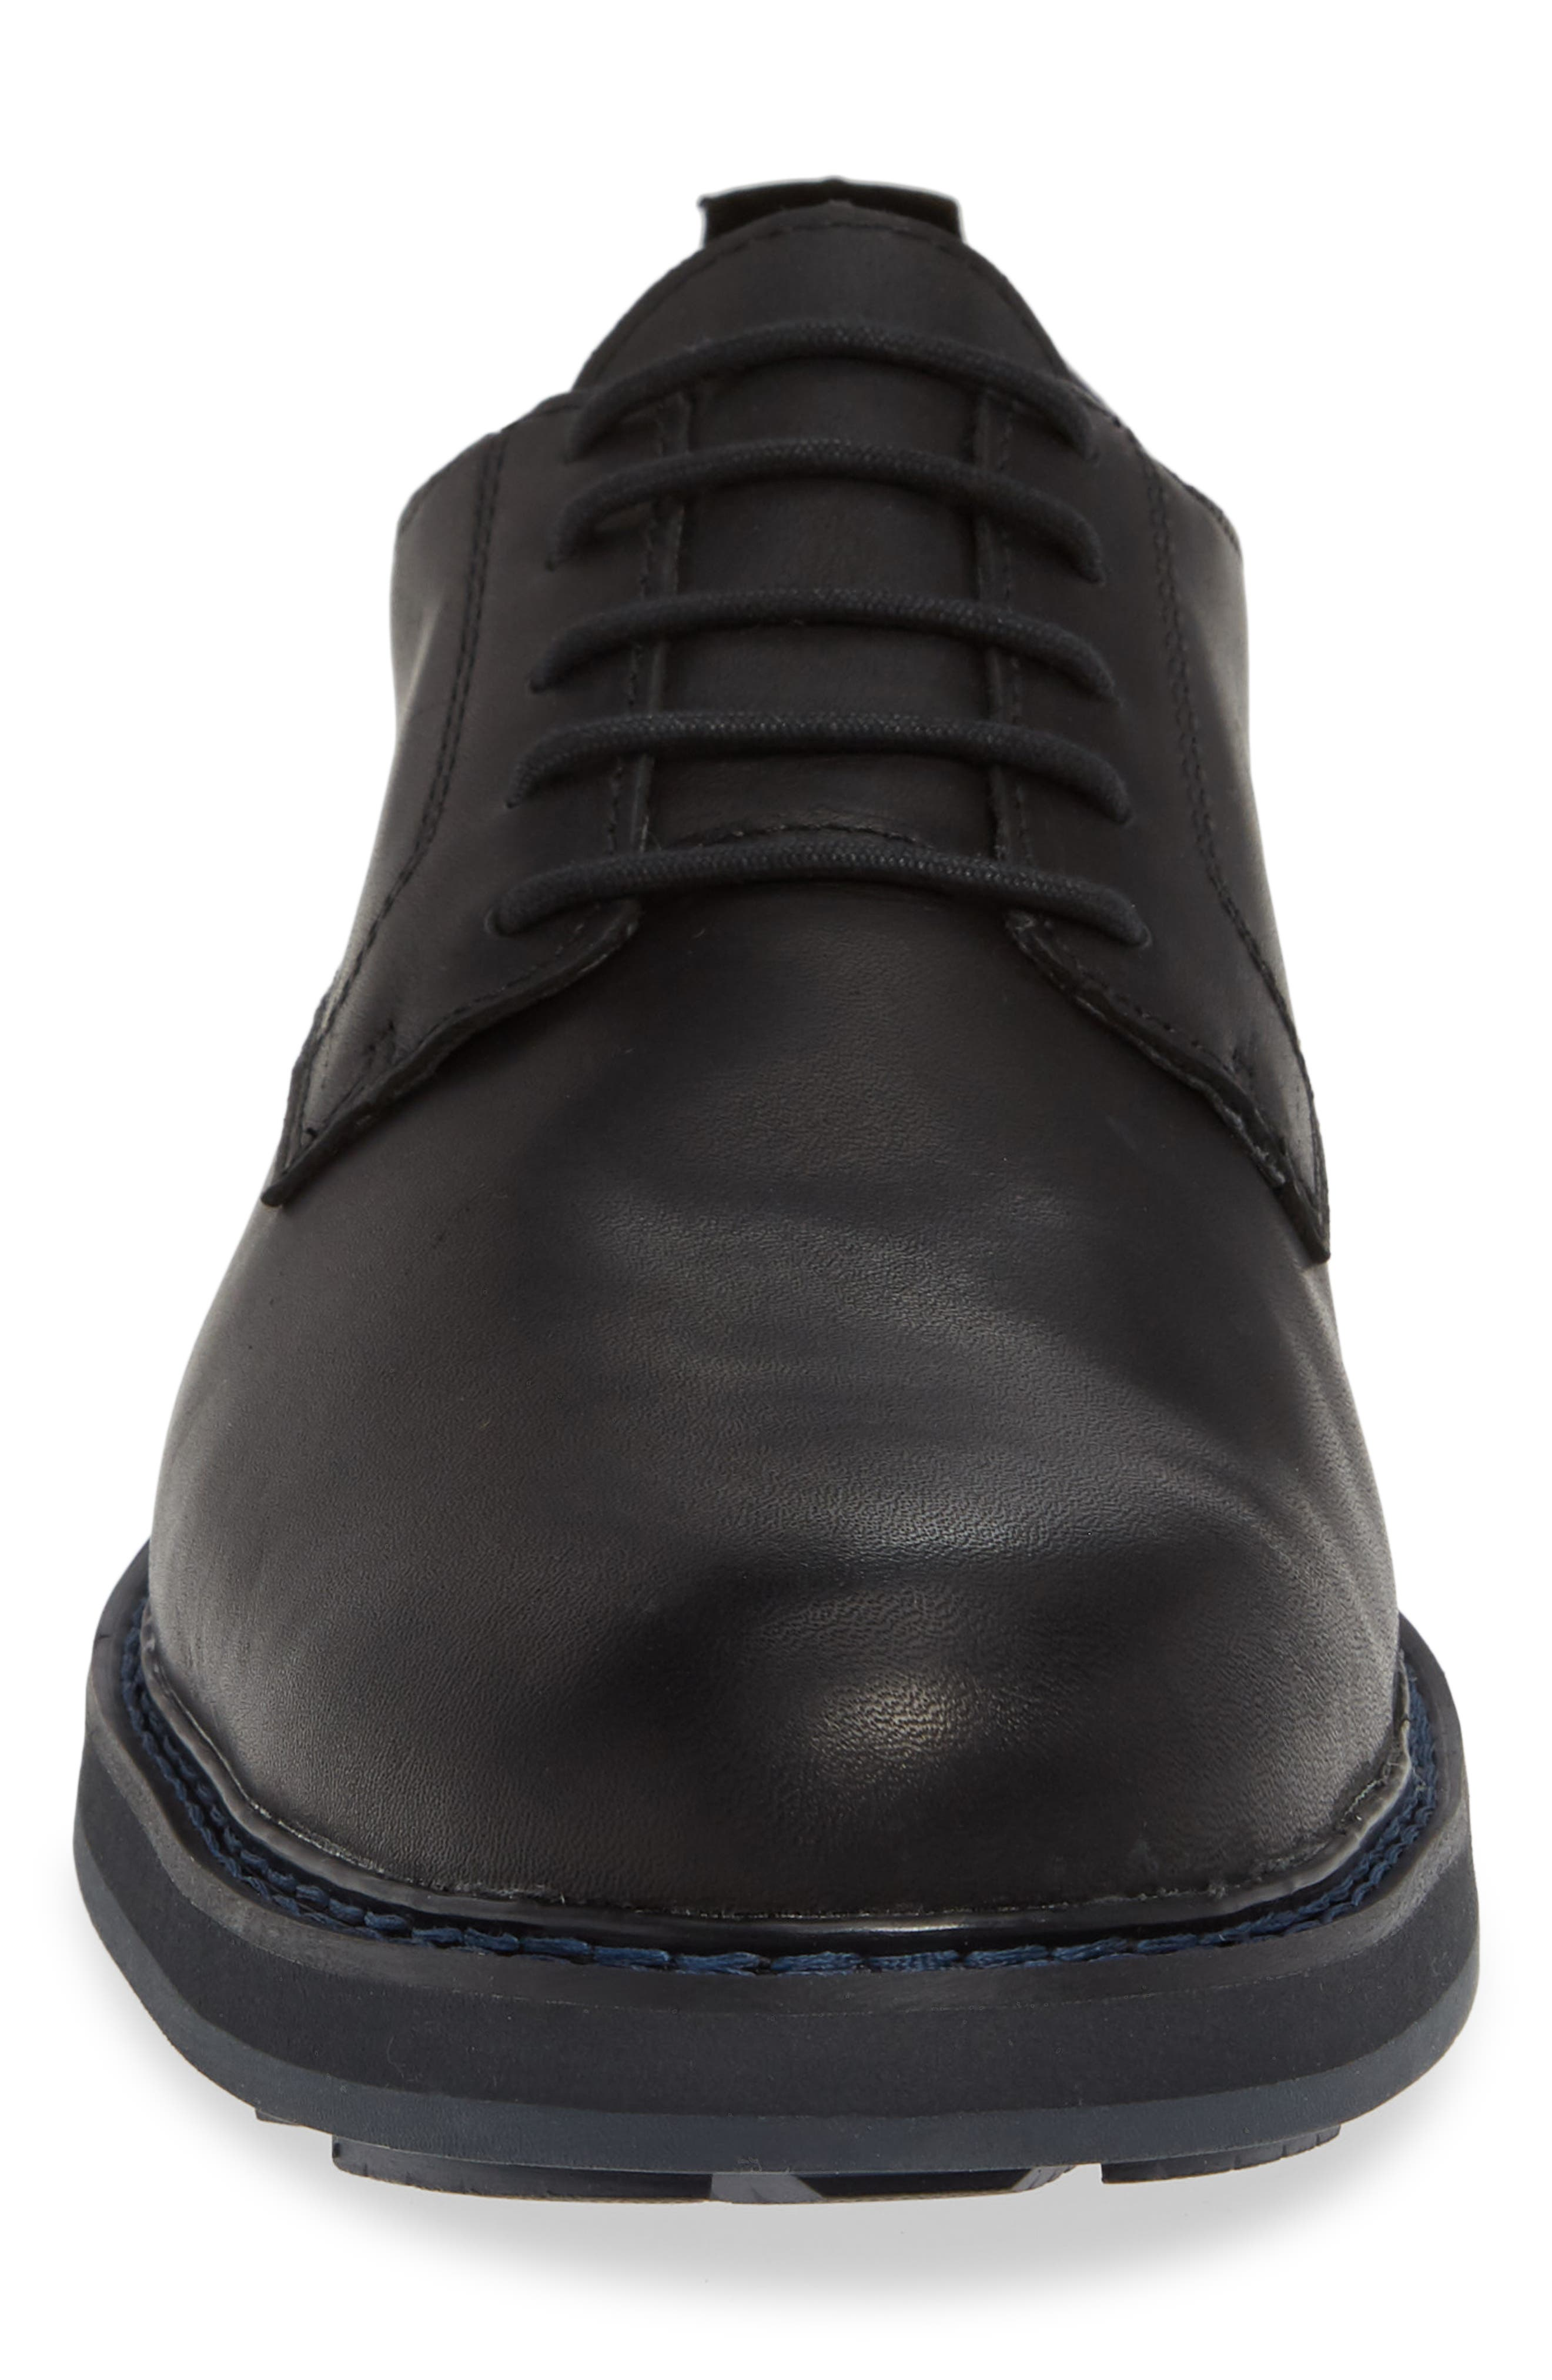 TIMBERLAND, Squall Canyon Waterproof Plain Toe Derby, Alternate thumbnail 4, color, BLACK LEATHER